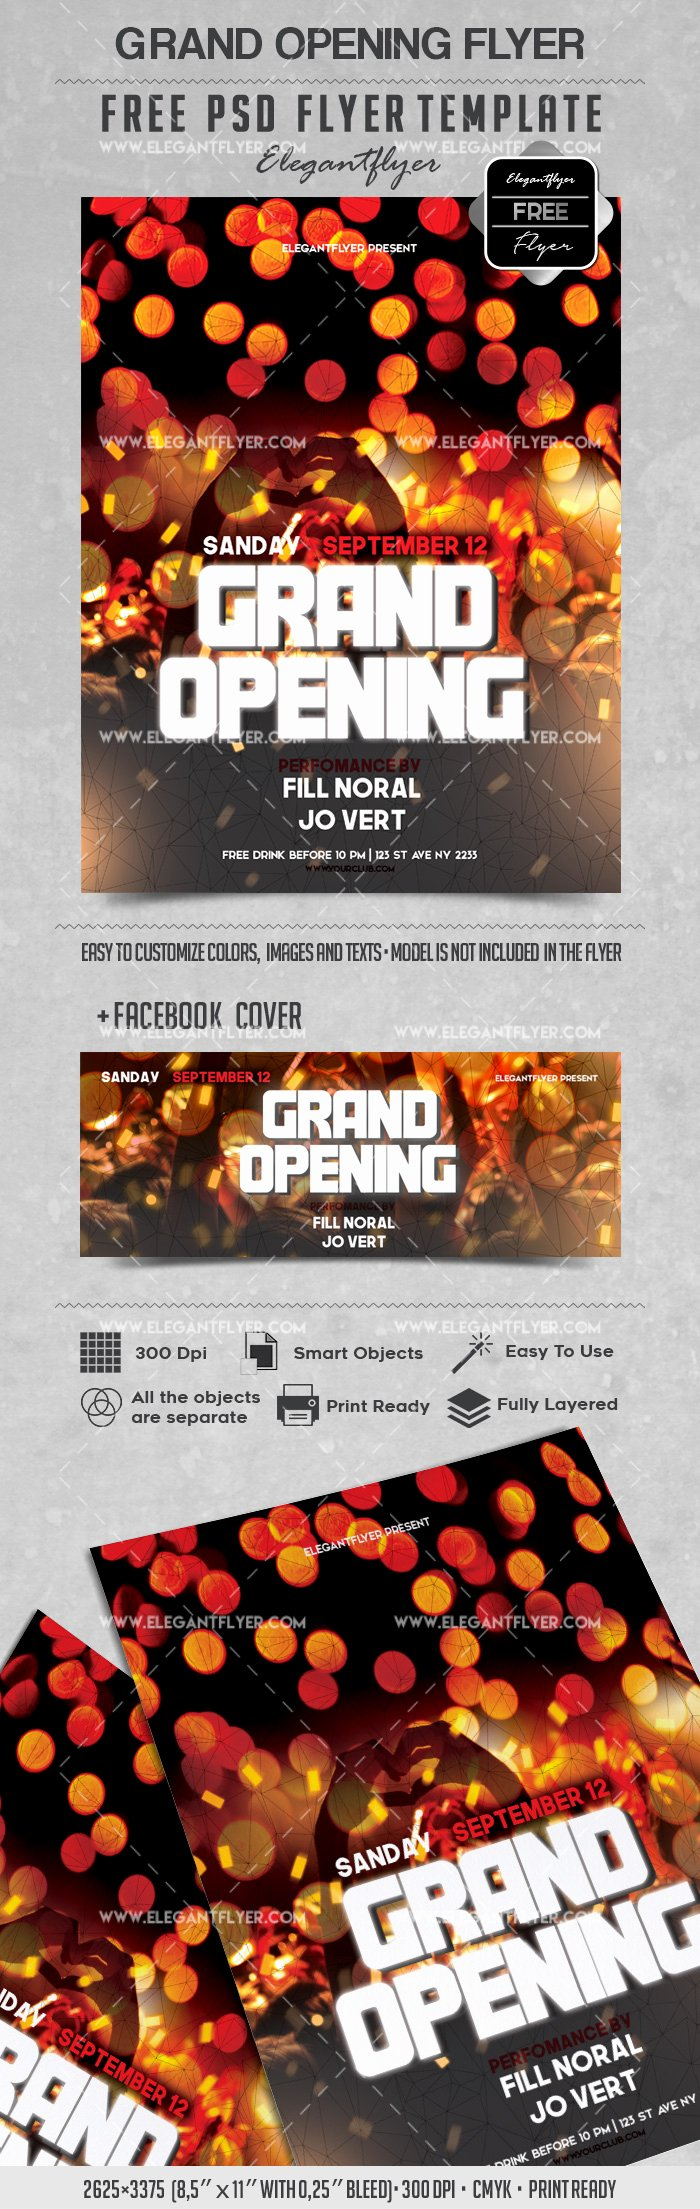 Grand Opening Flyer Template Free Unique Party for Grand Opening Lights Template – by Elegantflyer